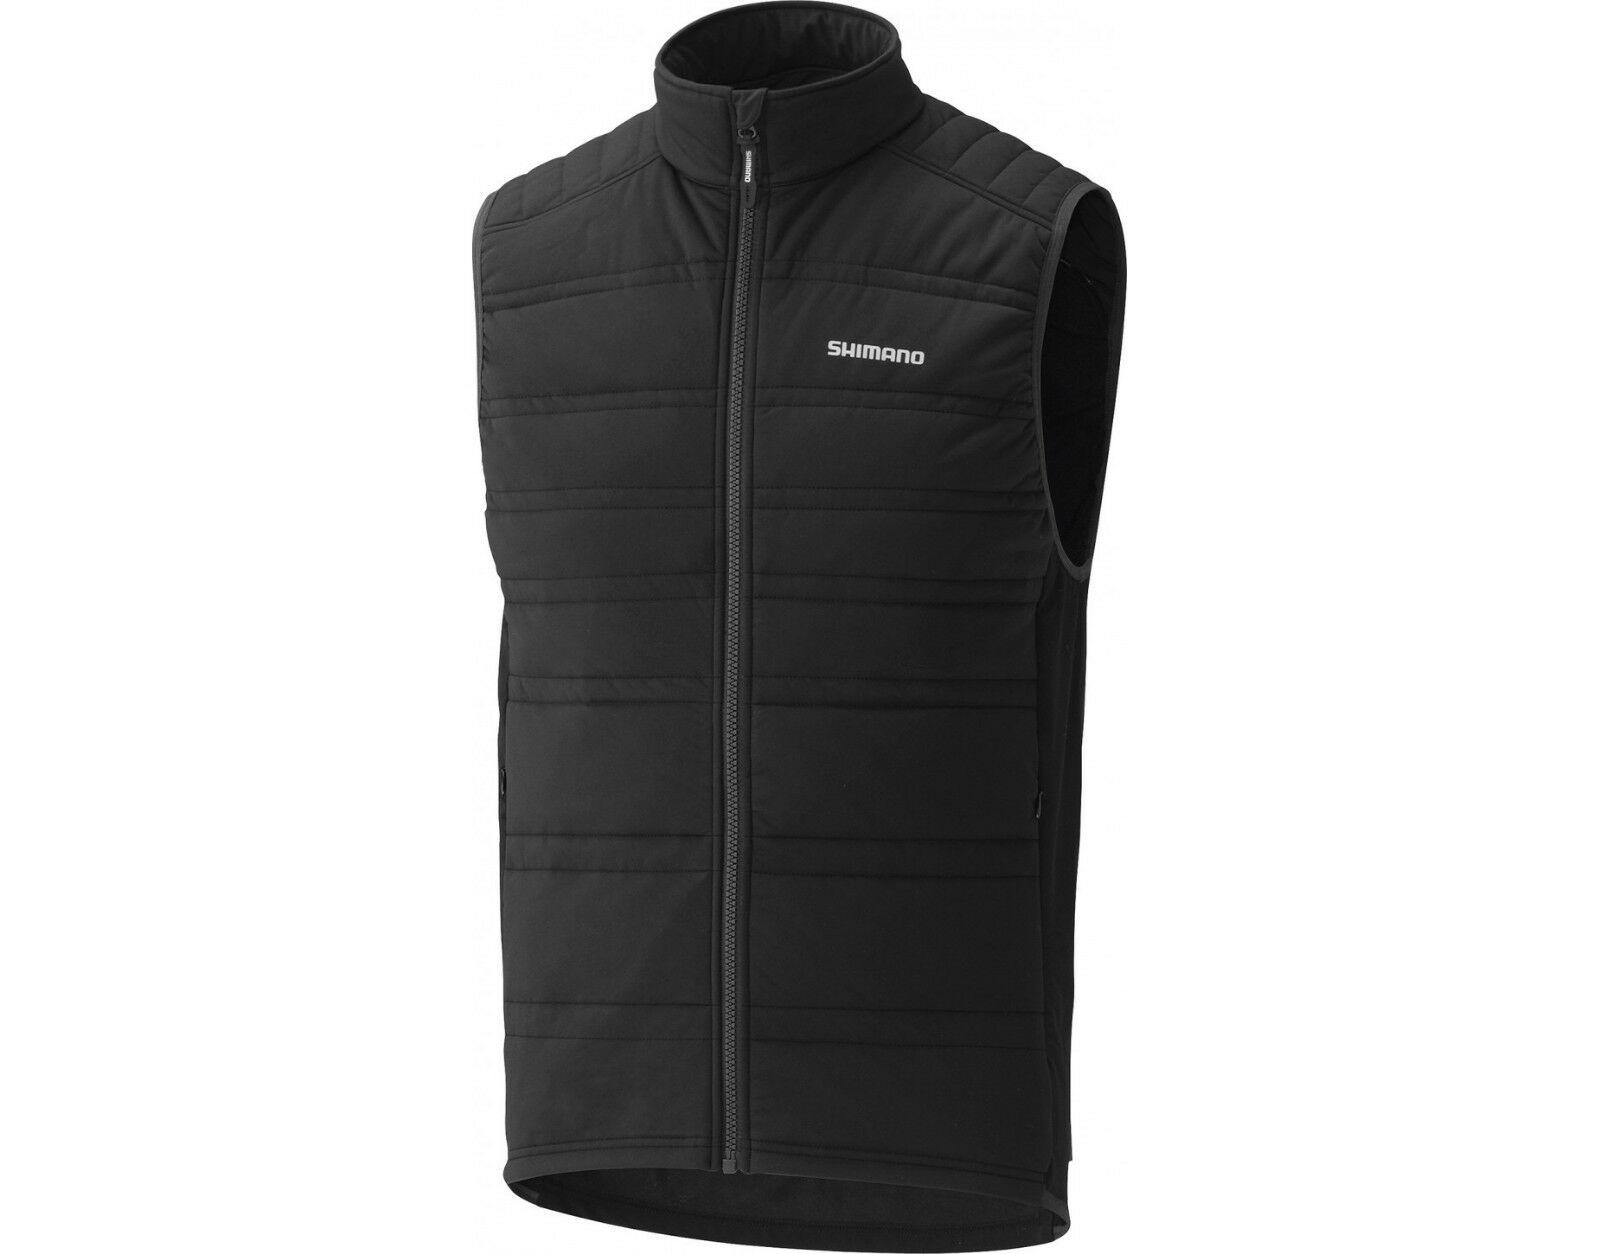 Gilet bici Shimano antipioggia-vento insulated vest water repellent windproof